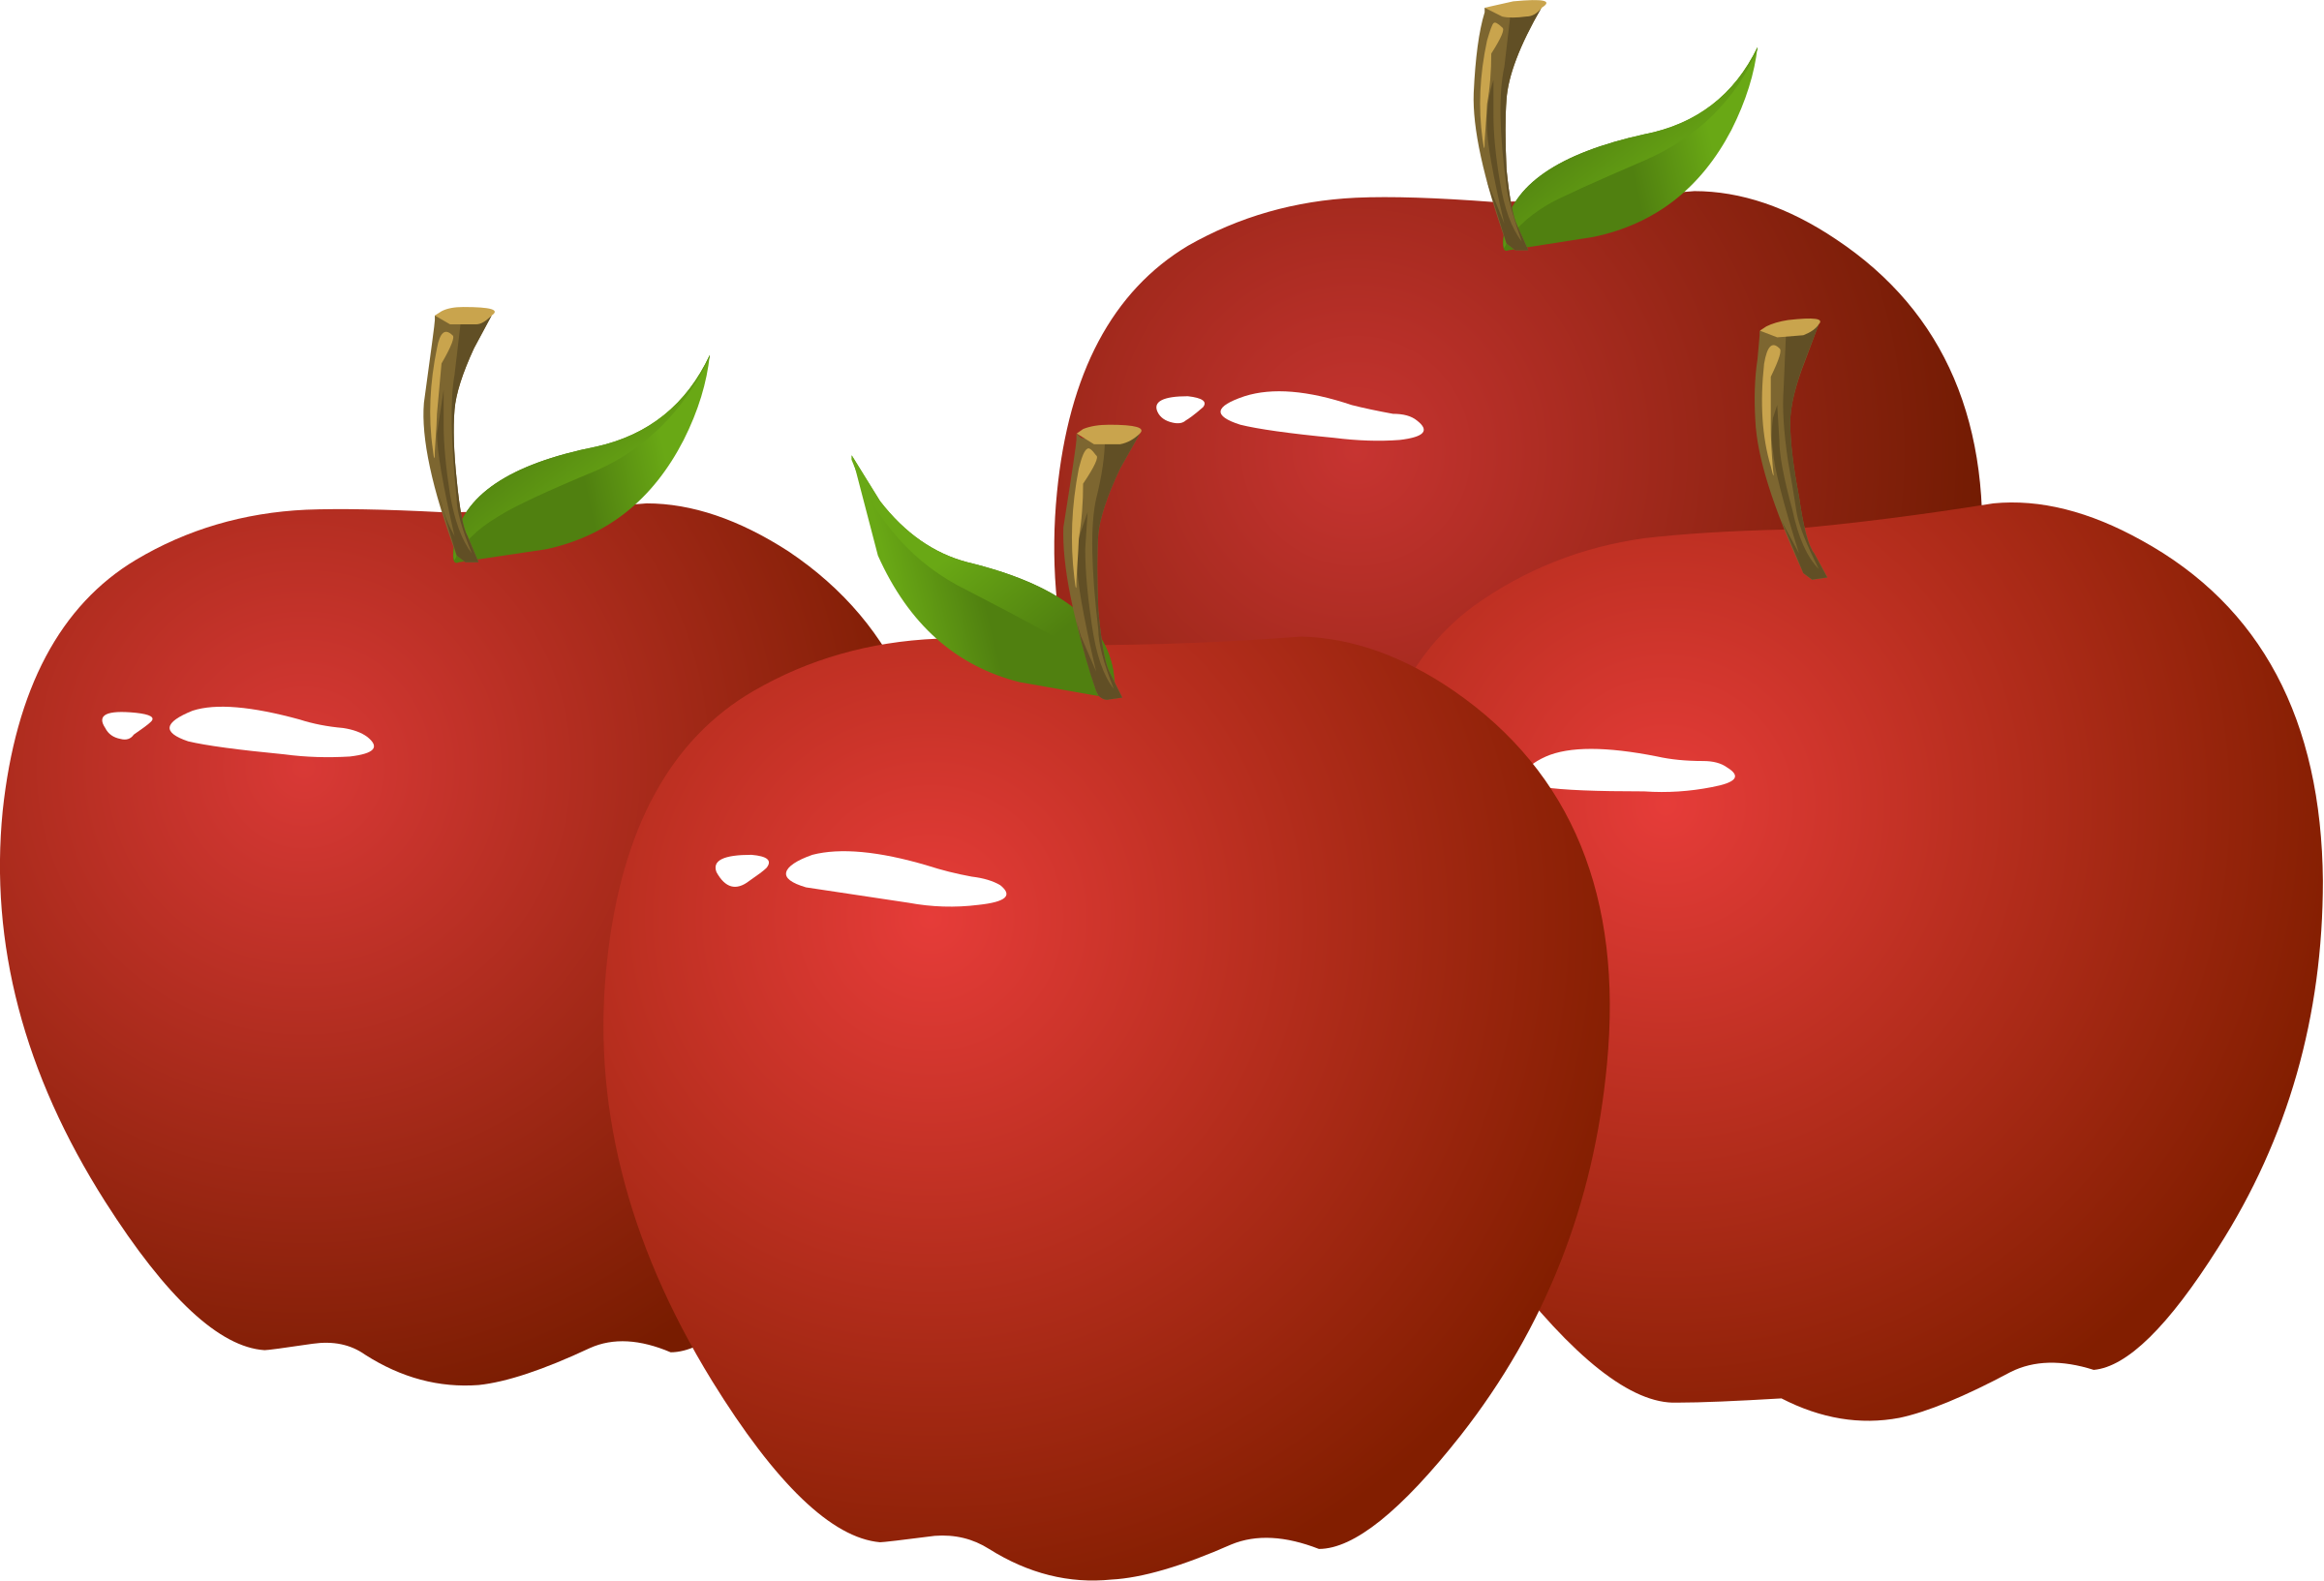 Foods clipart music. Food apple icons png